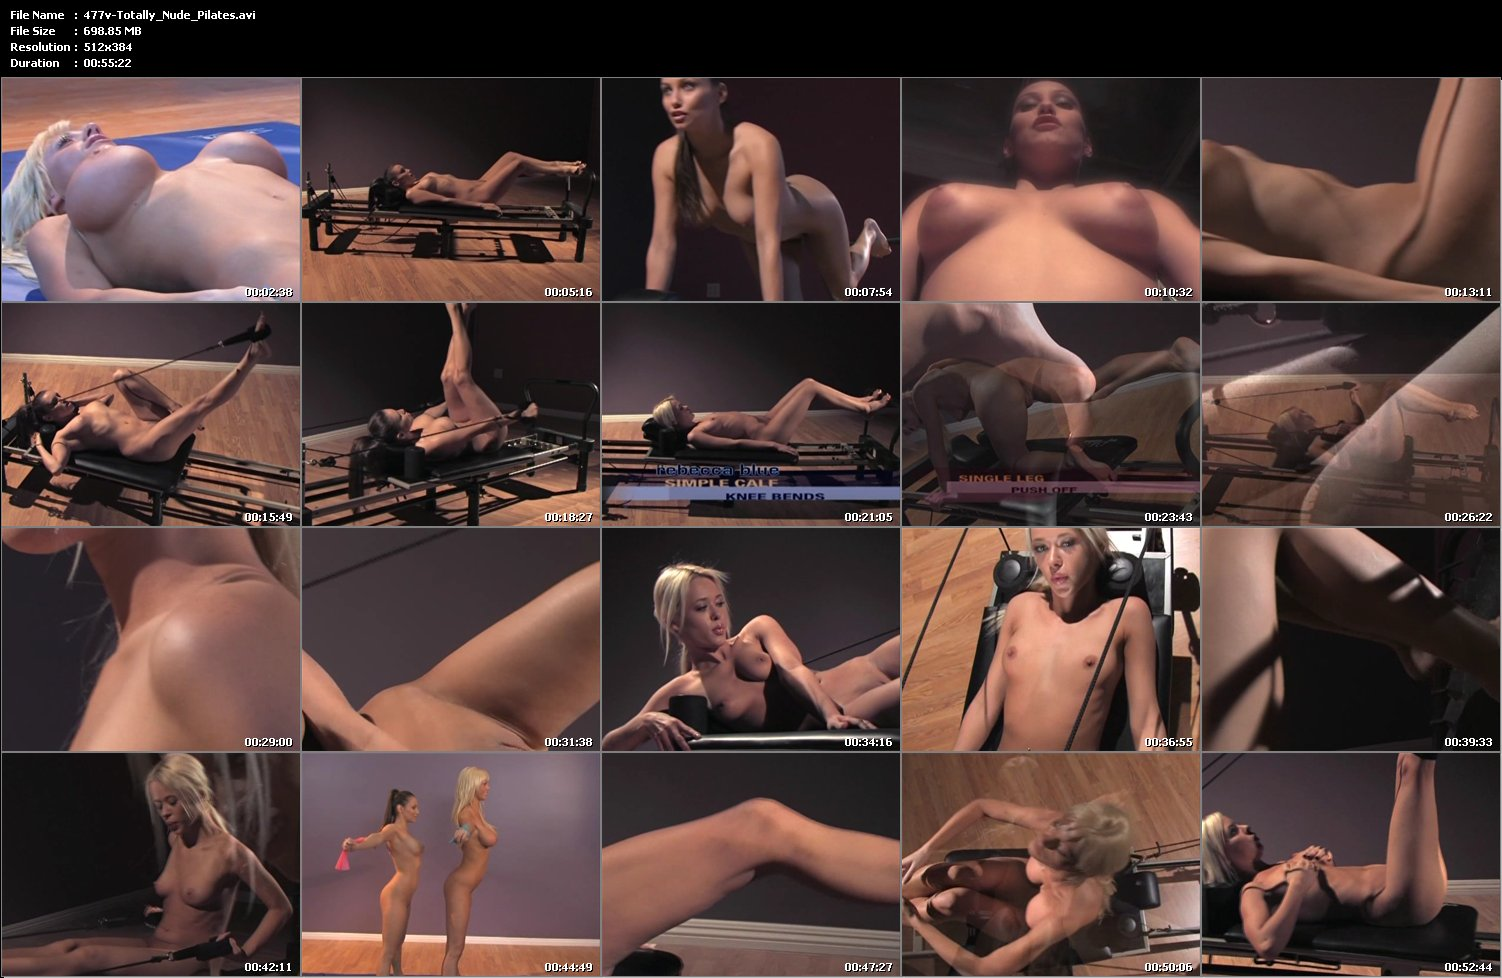 Totally nude pilates